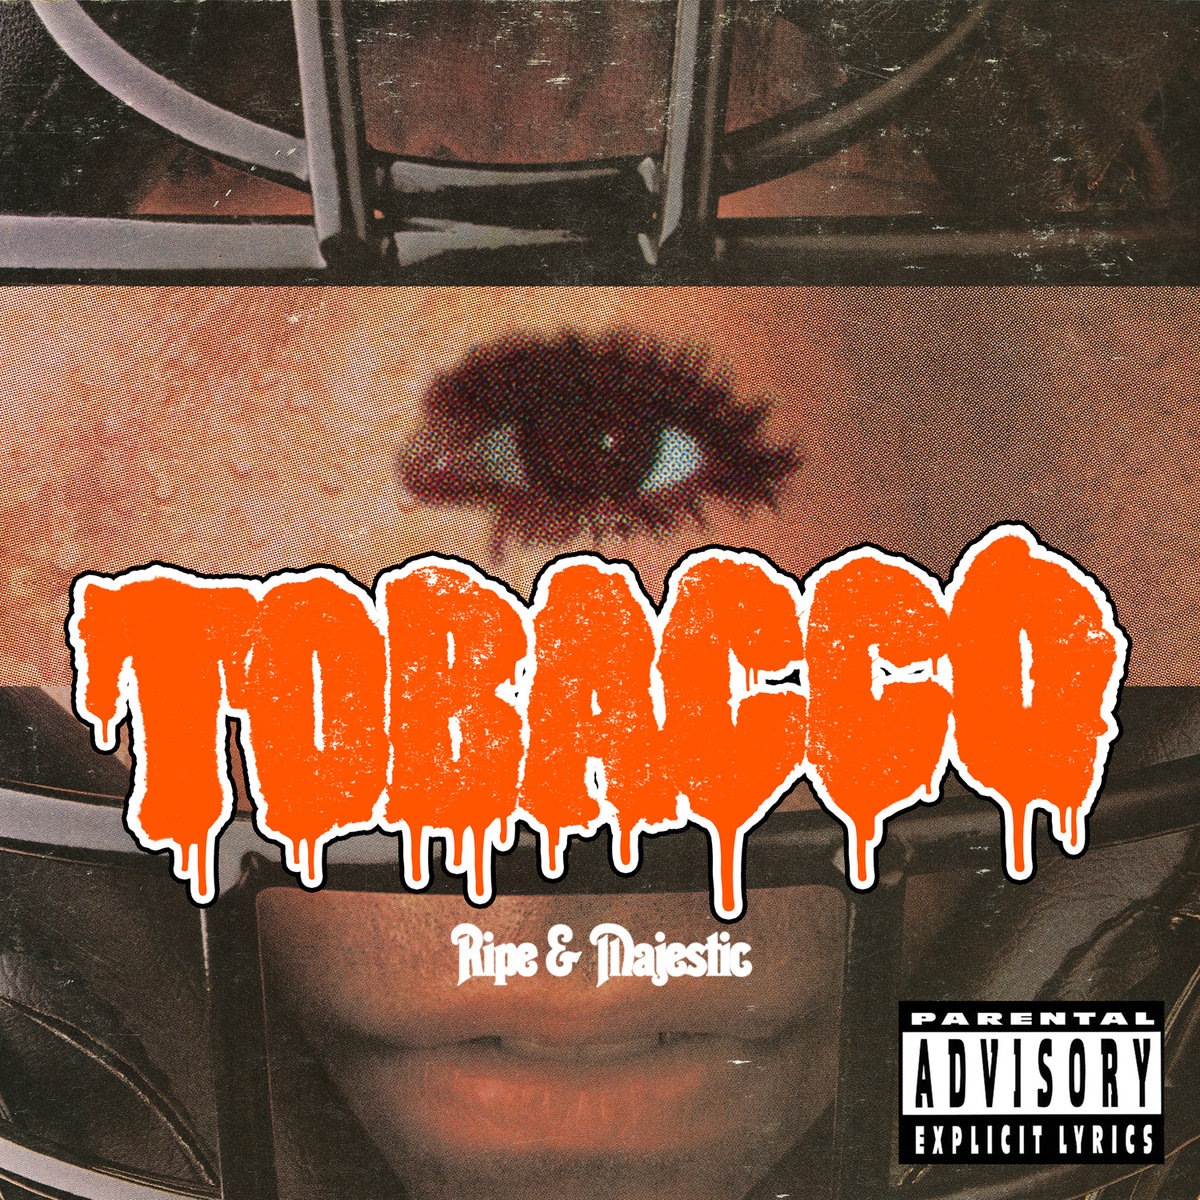 Ripe & Majestic by Tobacco, album review by Glen Byford